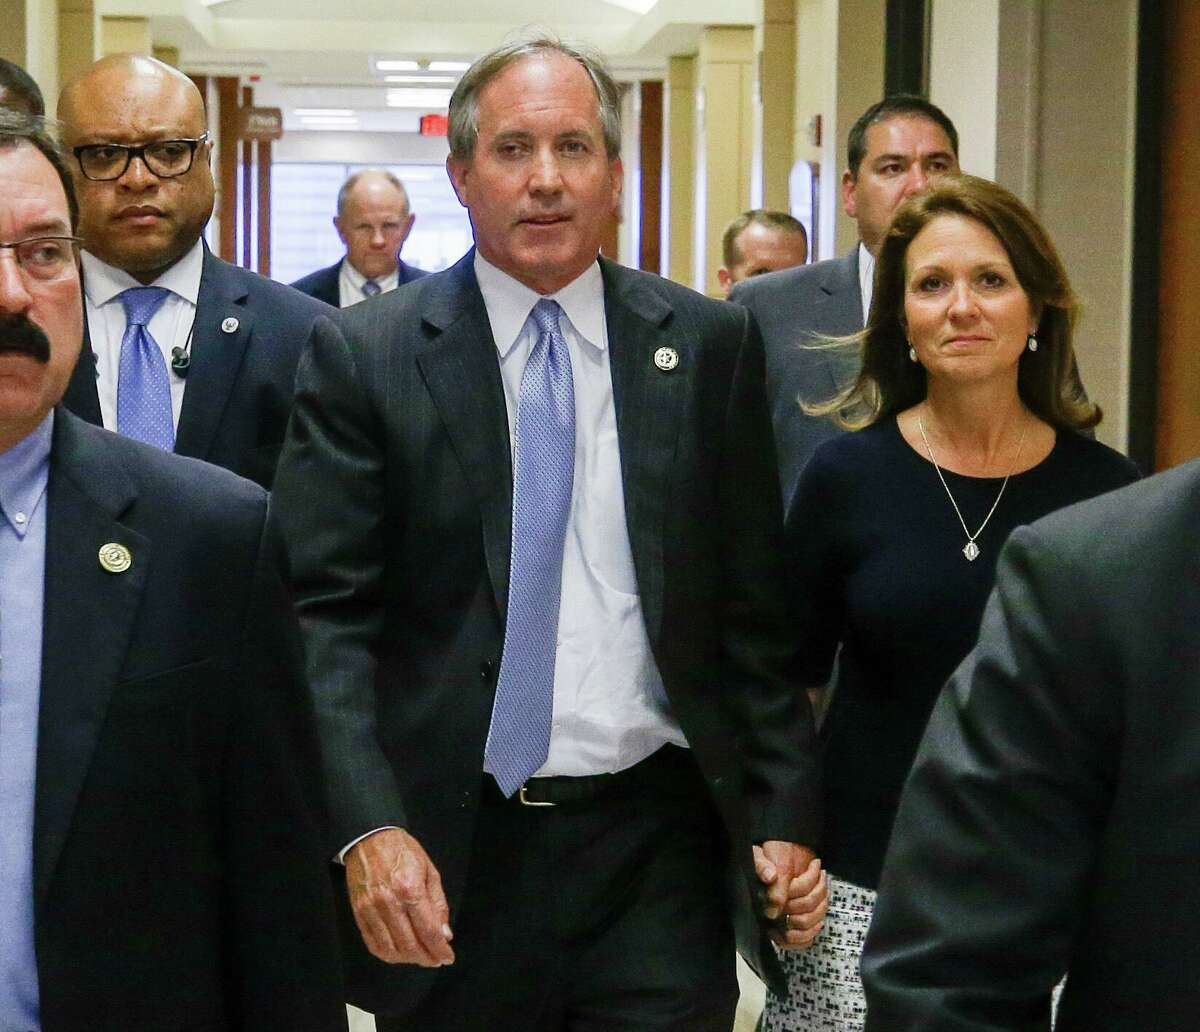 Republican Texas Attorney General Ken Paxton and his wife Angela Paxton, arrive for a hearing in the Harris County Criminal District Court in Houston, Thursday, July 27, 2017. A new trial date of Dec. 11 is set for Ken Paxton to face felony securities fraud charges. It's the third time a trial date has been set. (Melissa Phillip/Houston Chronicle via AP